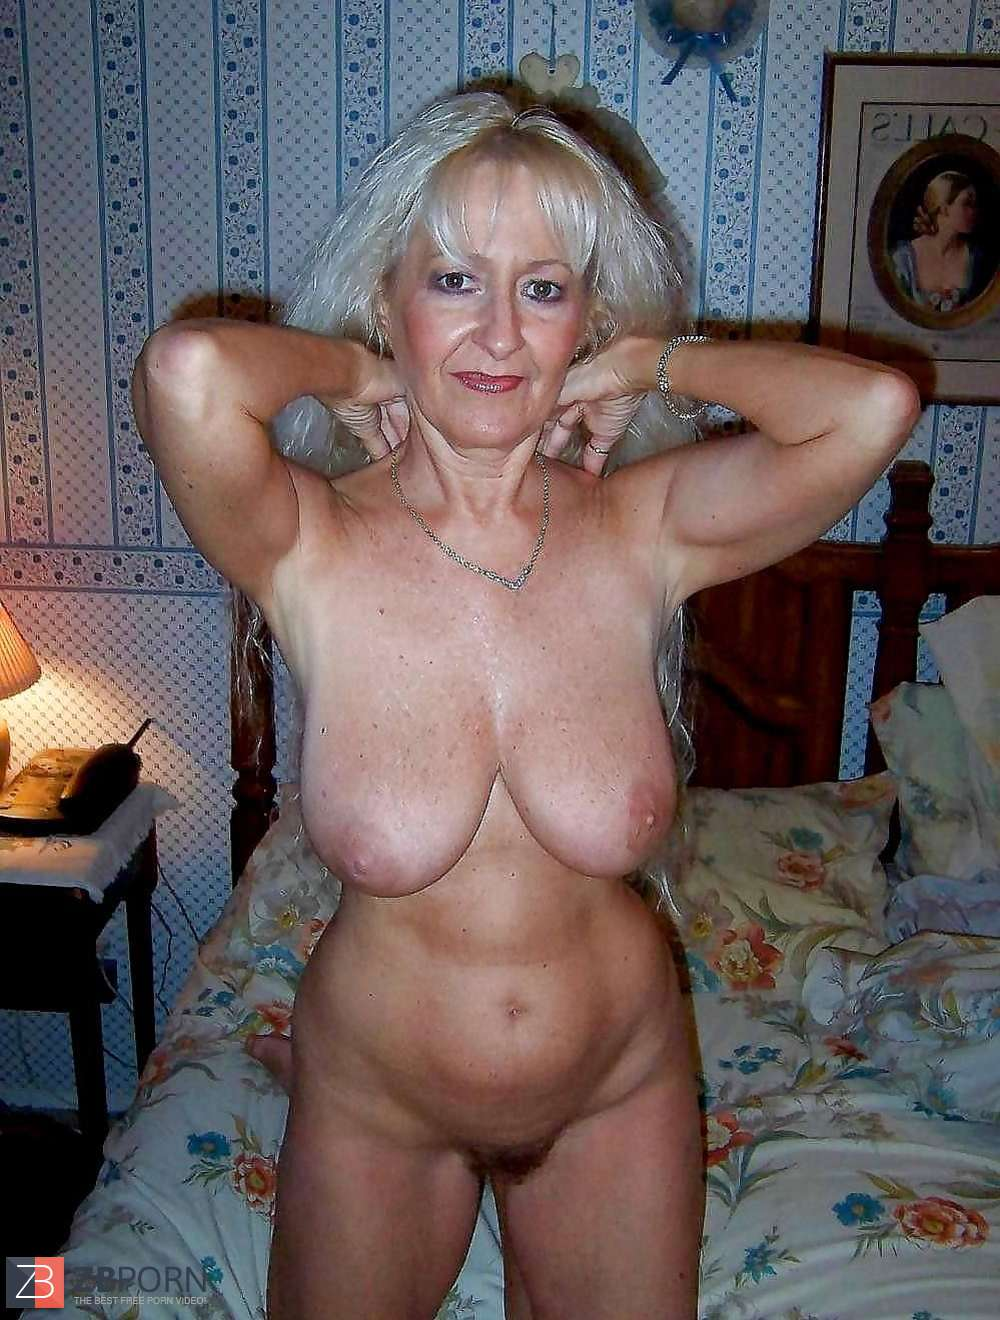 Granny With Ginormous All-Natural Baps - N C  Zb Porn-6532